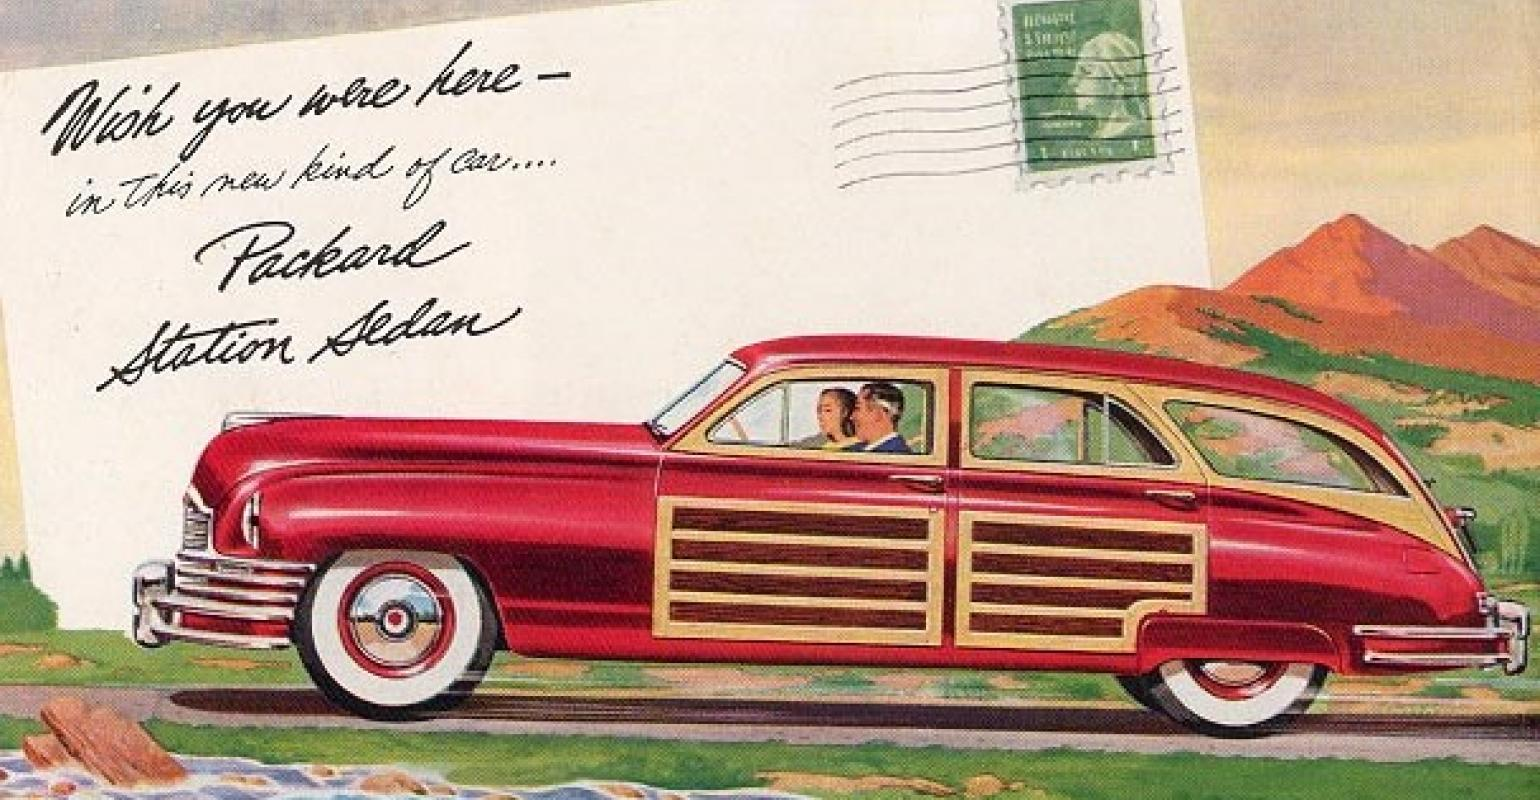 Wardsauto Flashback July 2017 Low Speed Windshield And Washer Wiring Diagram For 1959 Chevrolet Packard Among Those Benefitting From Postwar Independentautomaker Sales Surge In 1948